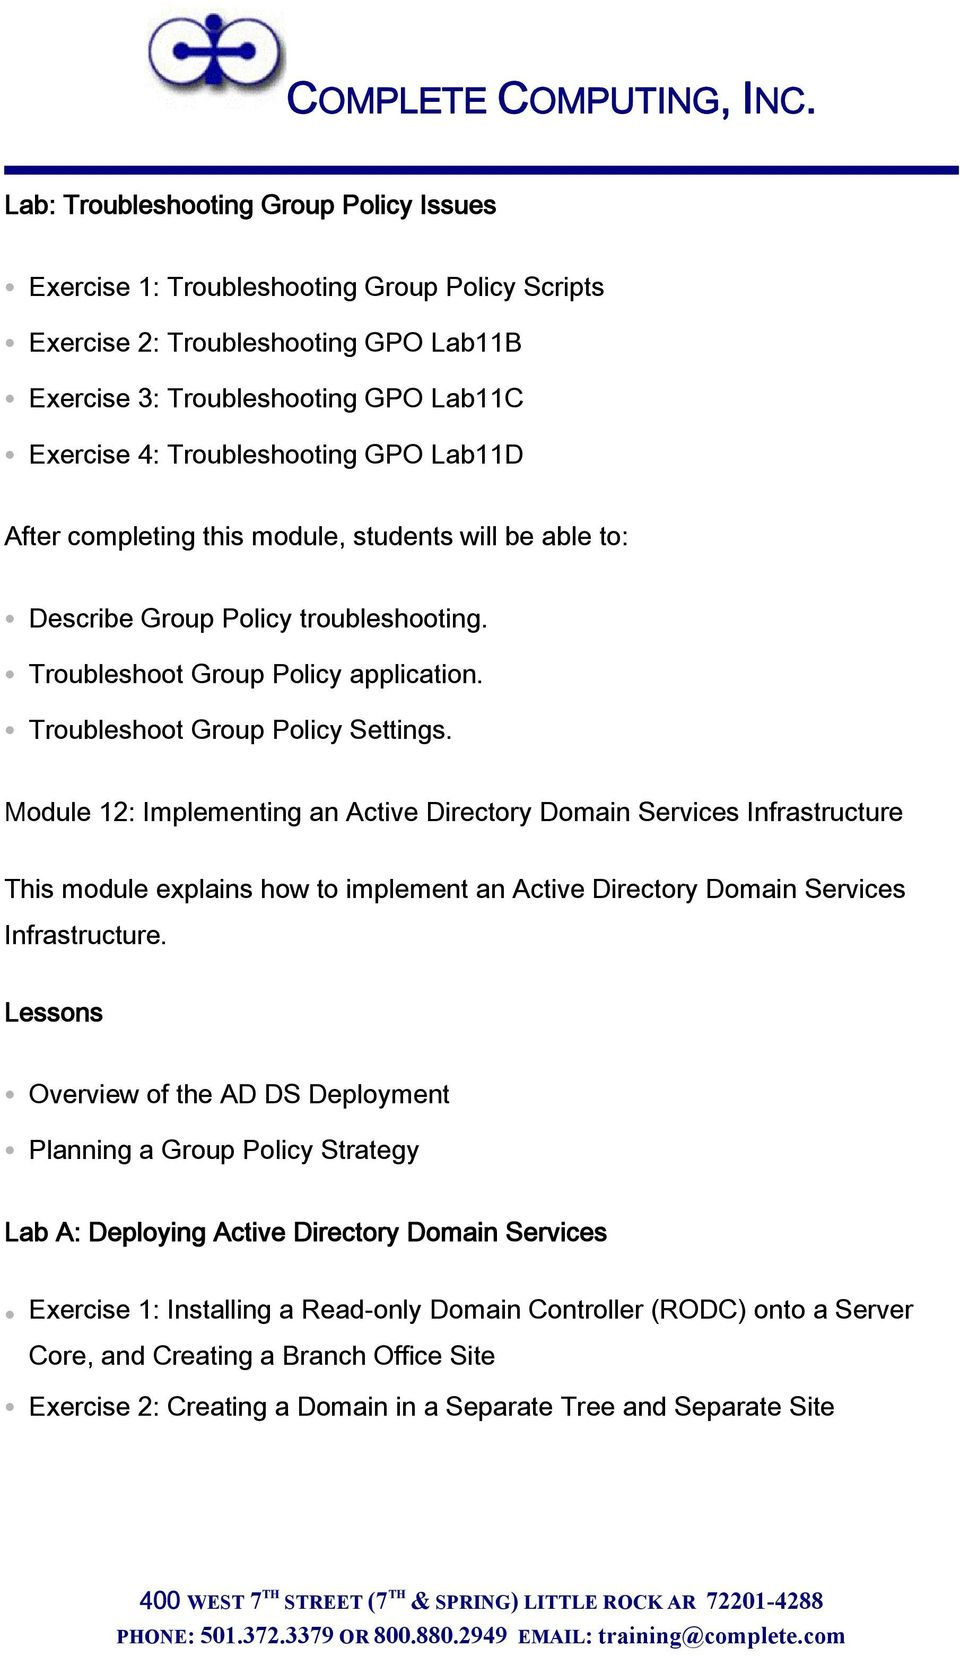 Module 12: Implementing an Active Directory Domain Services Infrastructure This module explains how to implement an Active Directory Domain Services Infrastructure.